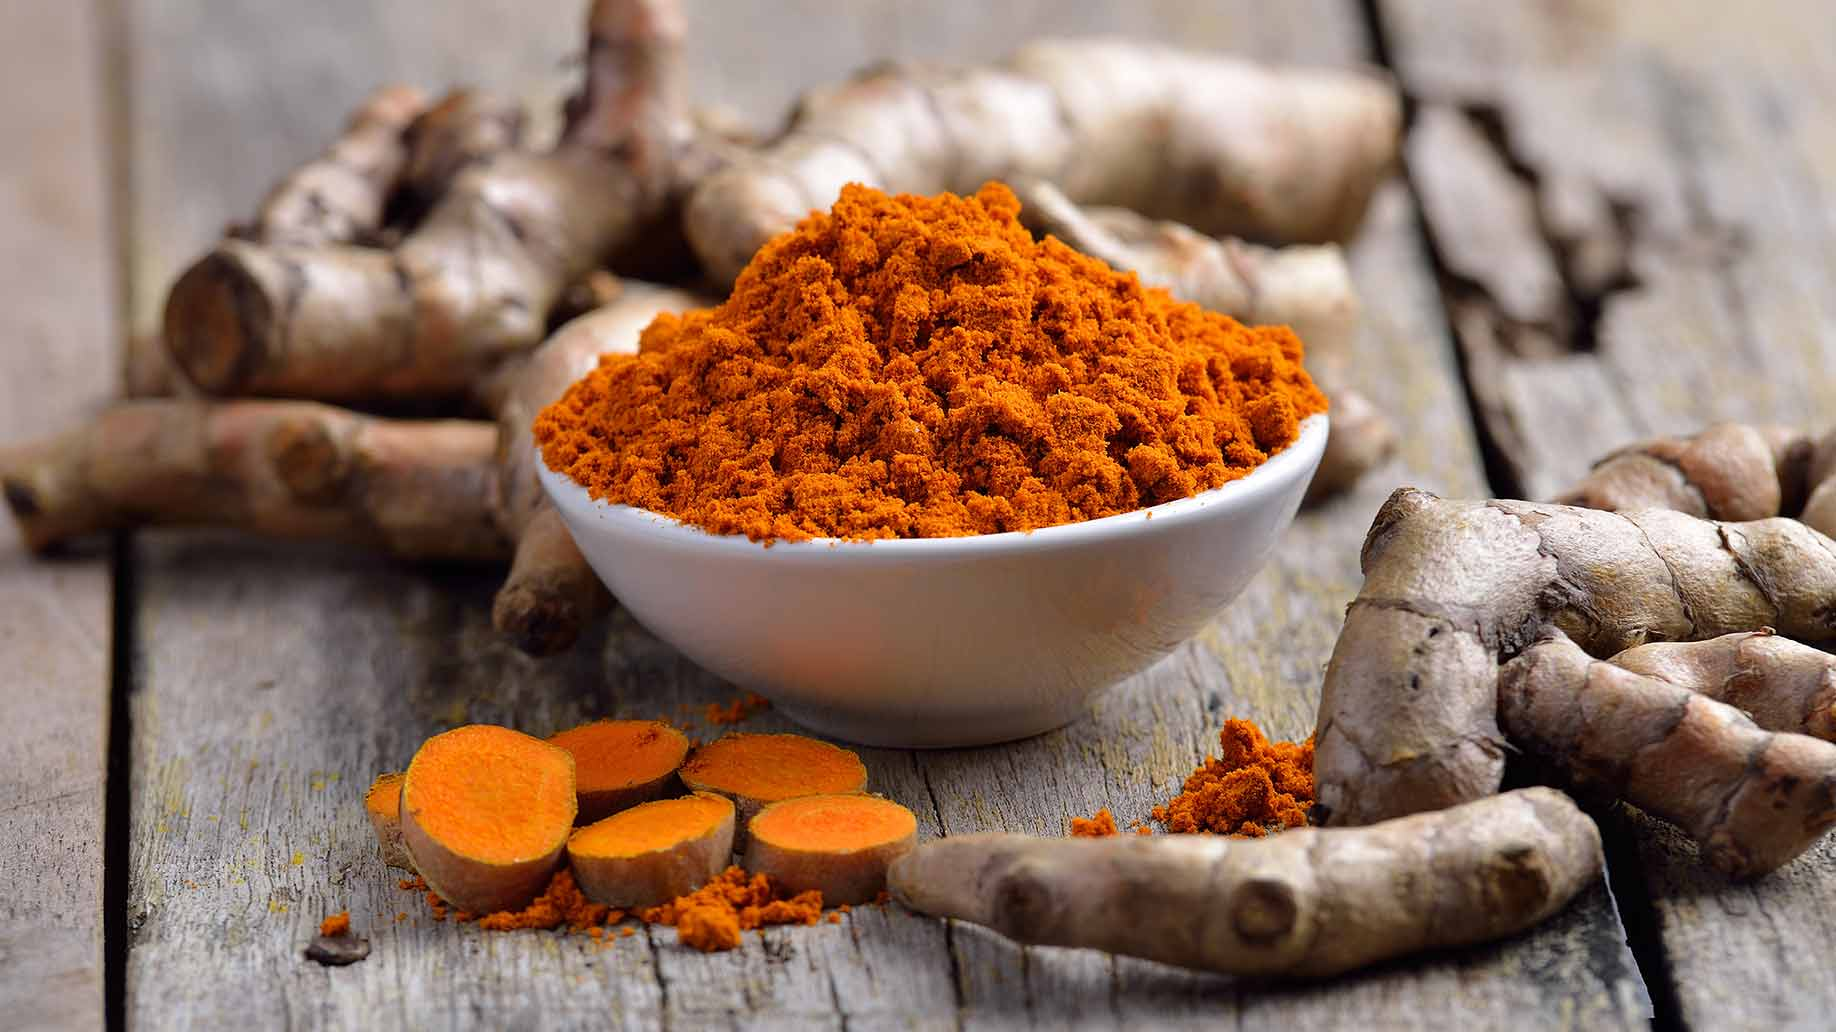 turmeric curcumin root orange powder arthritis natural remedies